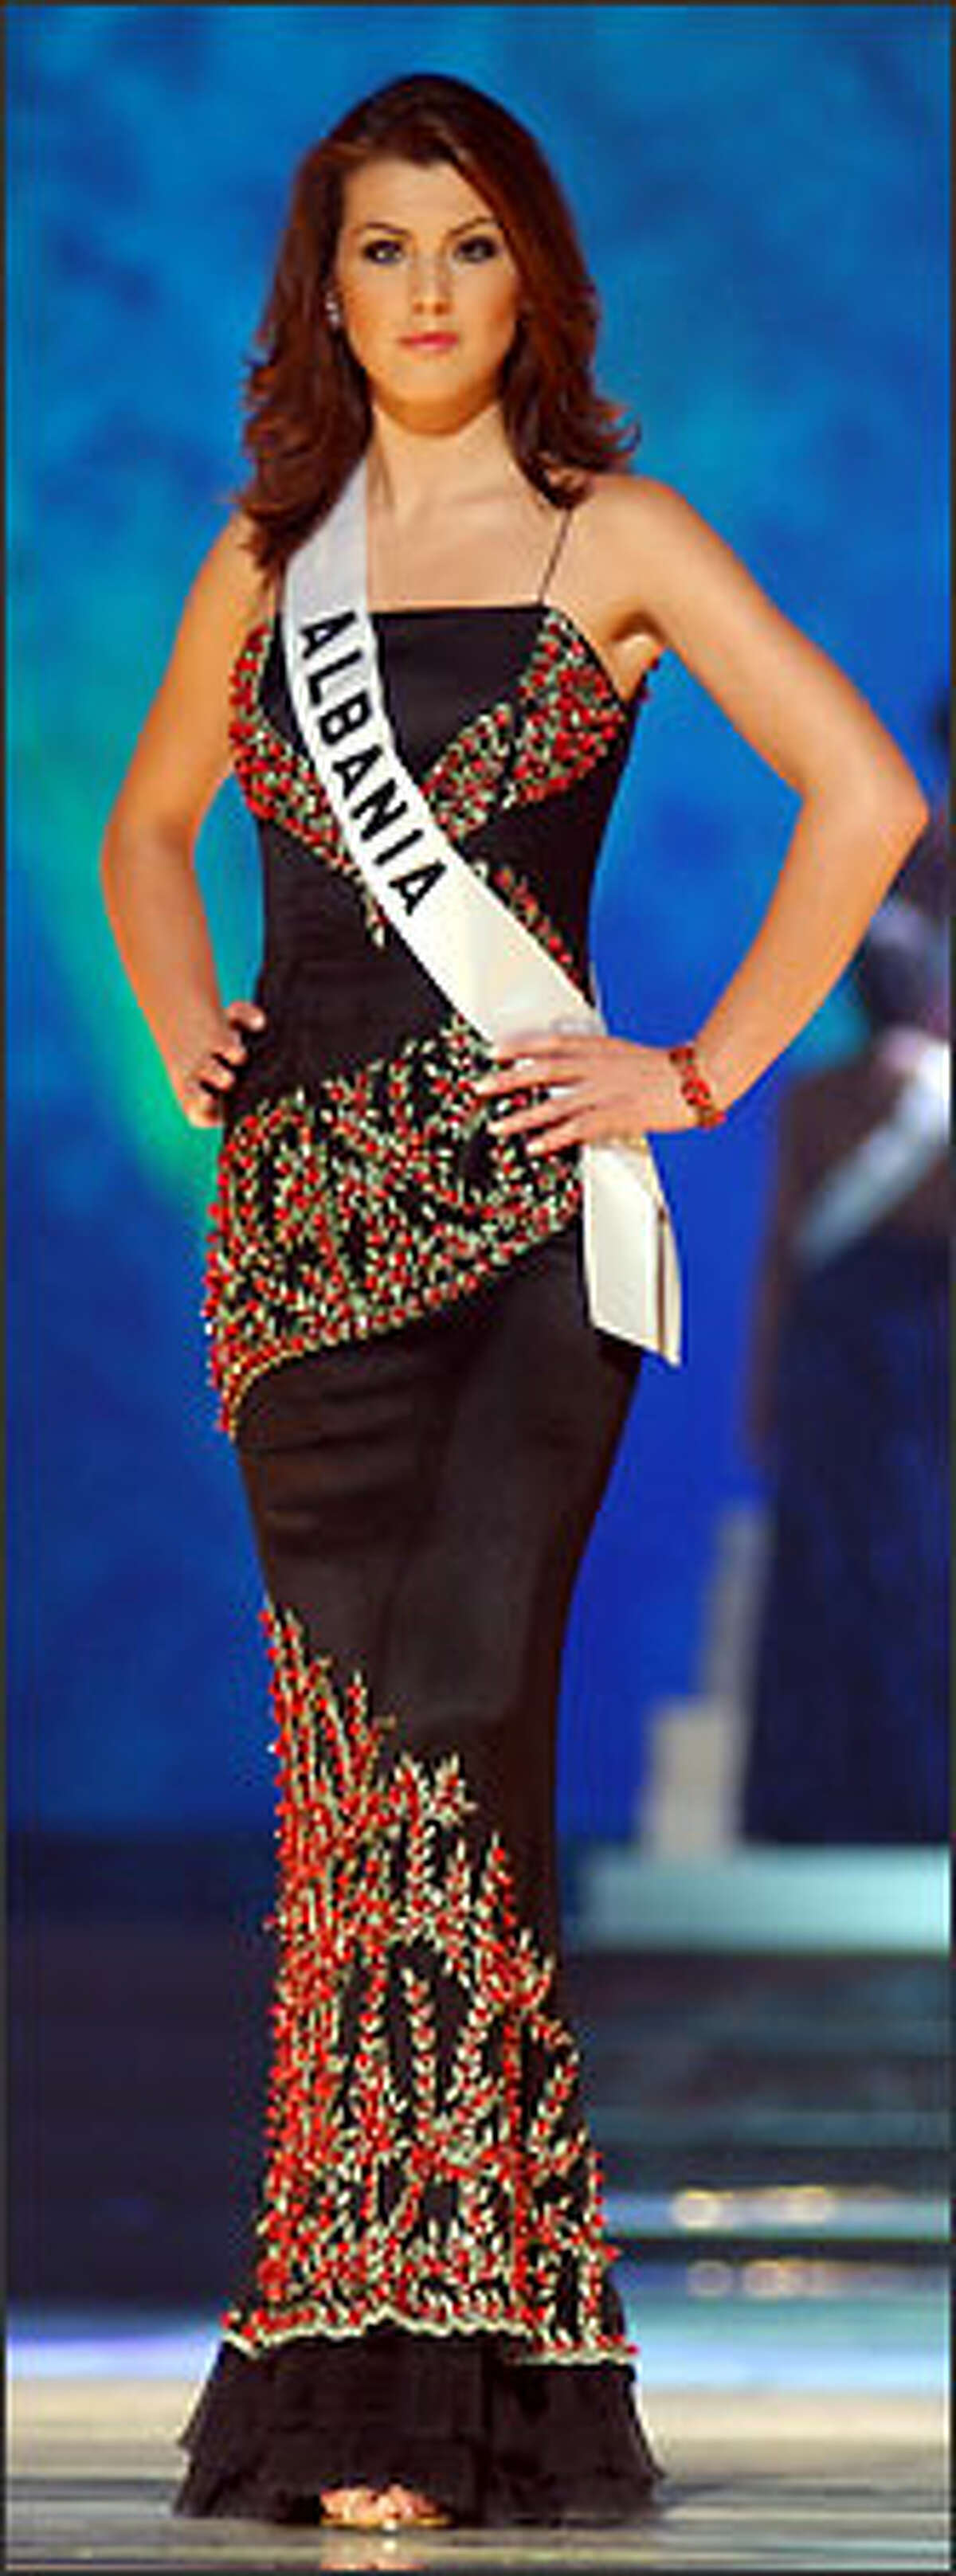 Denisa Kola, Miss Albania 2003, from Peshkopia, competes May 29, 2003 in her choice of evening gown during the 2003 Miss Universe Presentation Show at the Panama Canal Village Convention Center in Panama City, Panama. During the Presentation Show, each Miss Universe delegate is judged by a preliminary panel of distinguished judges in three categories. These categories consist of individual interview, swimsuit competition and evening gown competition. The scores are tallied and the Top 15 delegates will be announced during the LIVE broadcast of the 52nd annual Miss Universe competition on Tuesday, June 3, 2003 from Panama City, Panama on NBC at 9:00 PM (ET)/8 PM (CT) (delayed PT). ho/MISS UNIVERSE L.P., LLLP